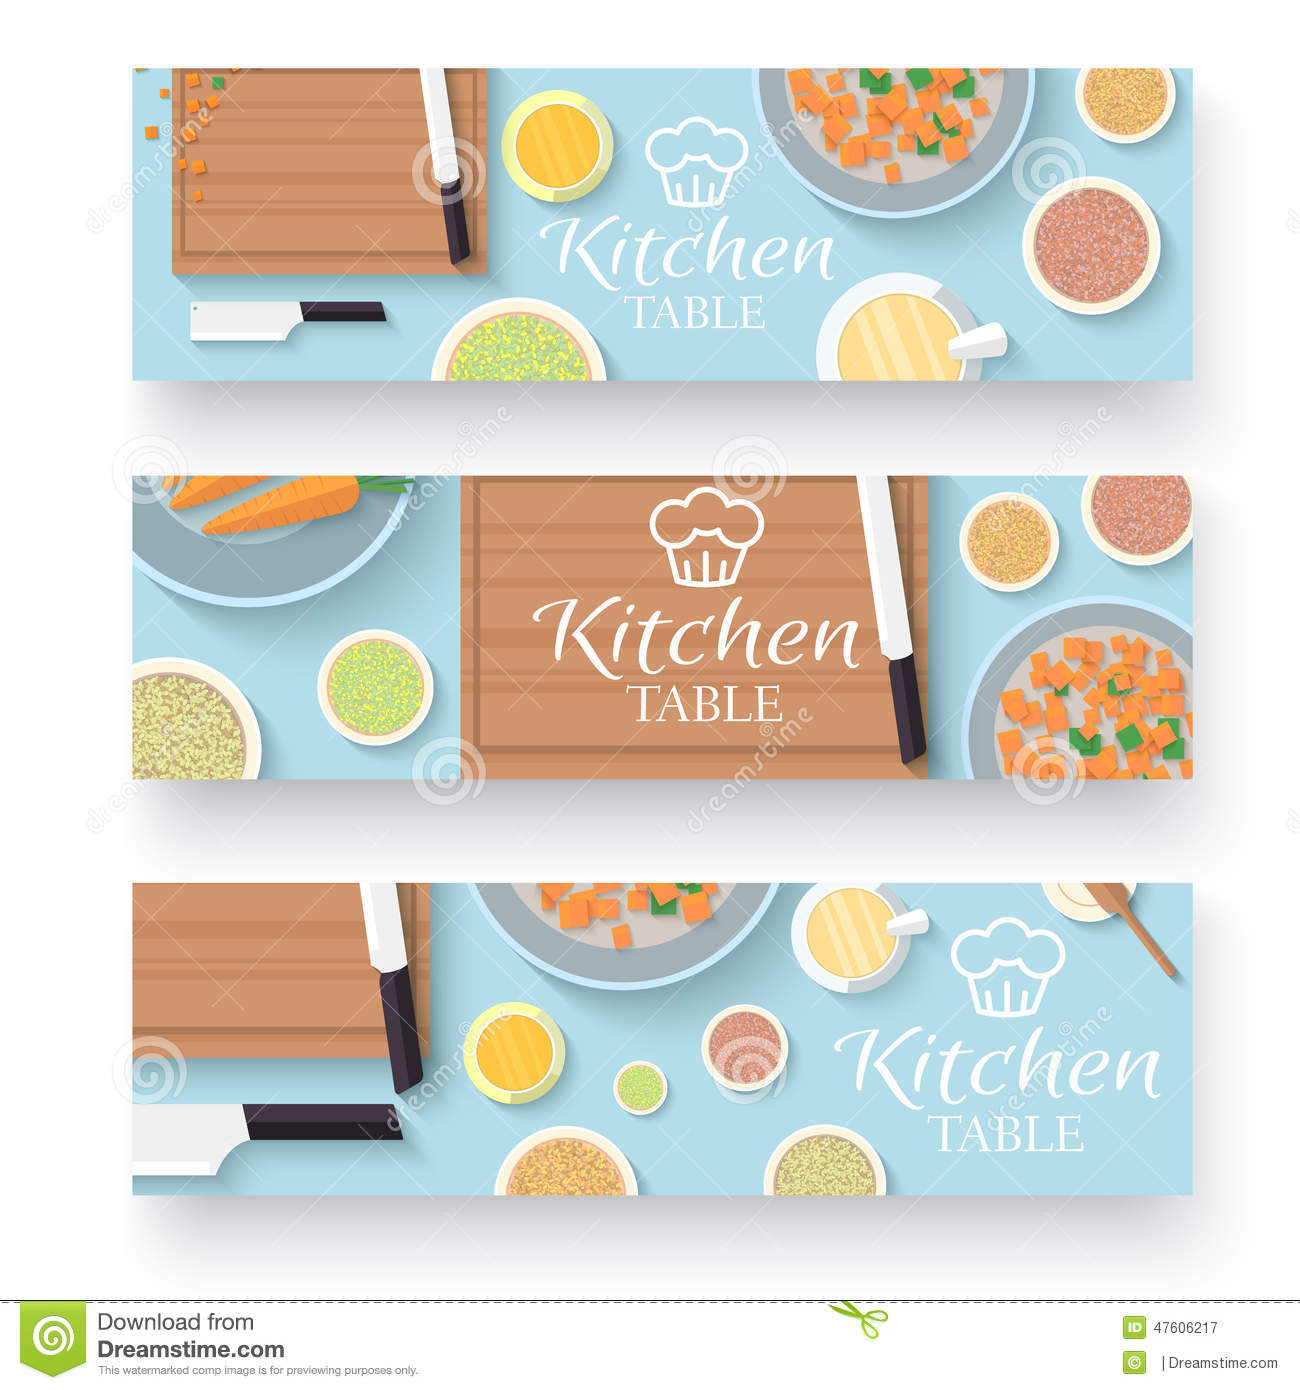 Flat kitchen table for cooking in house banners stock for Kitchen design vector